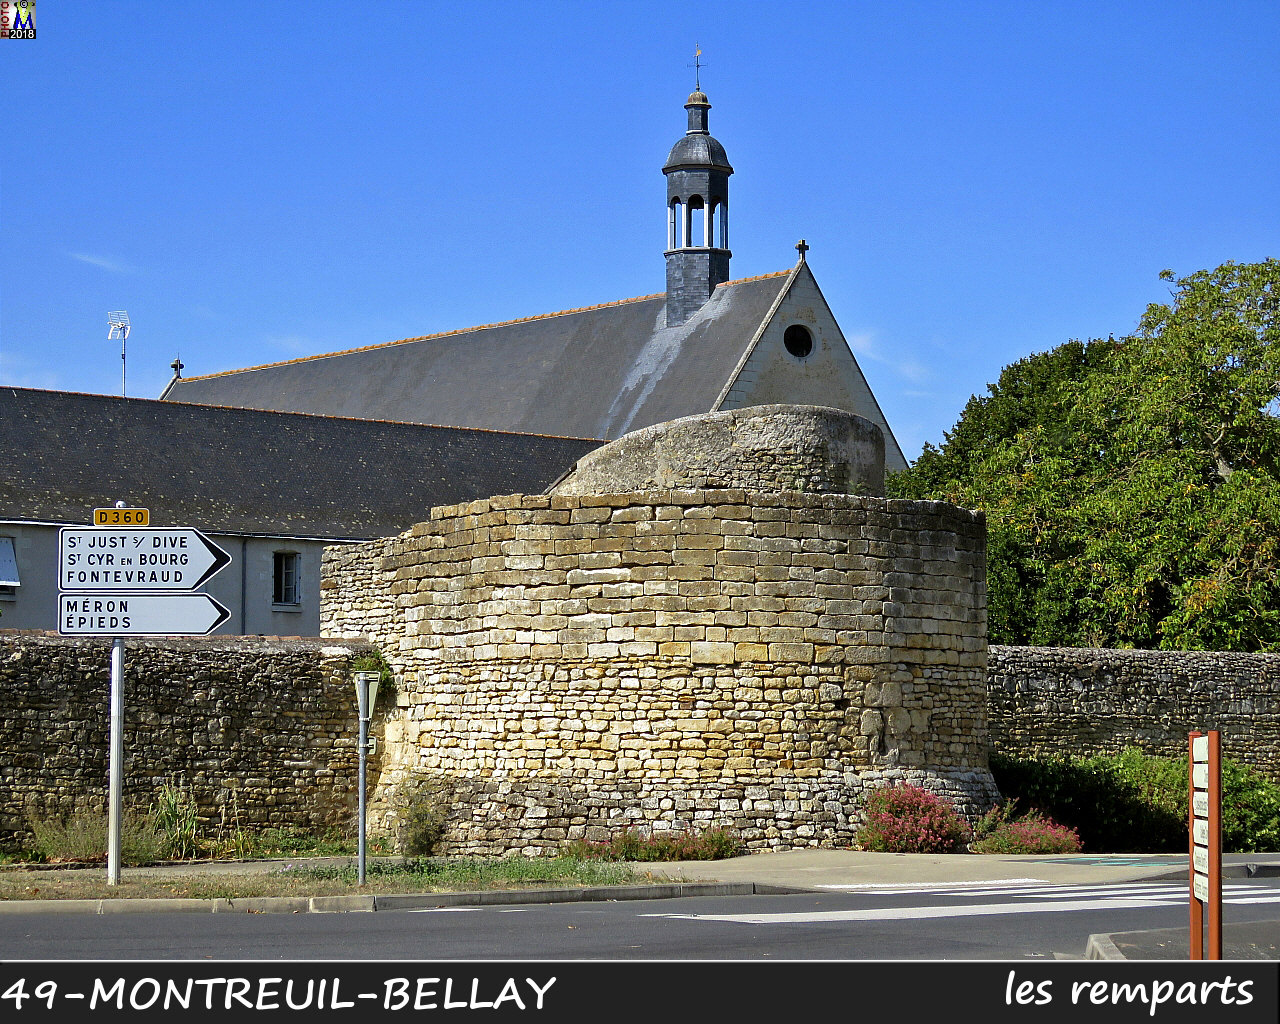 49MONTREUIL-BELLAY_remparts_1012.jpg